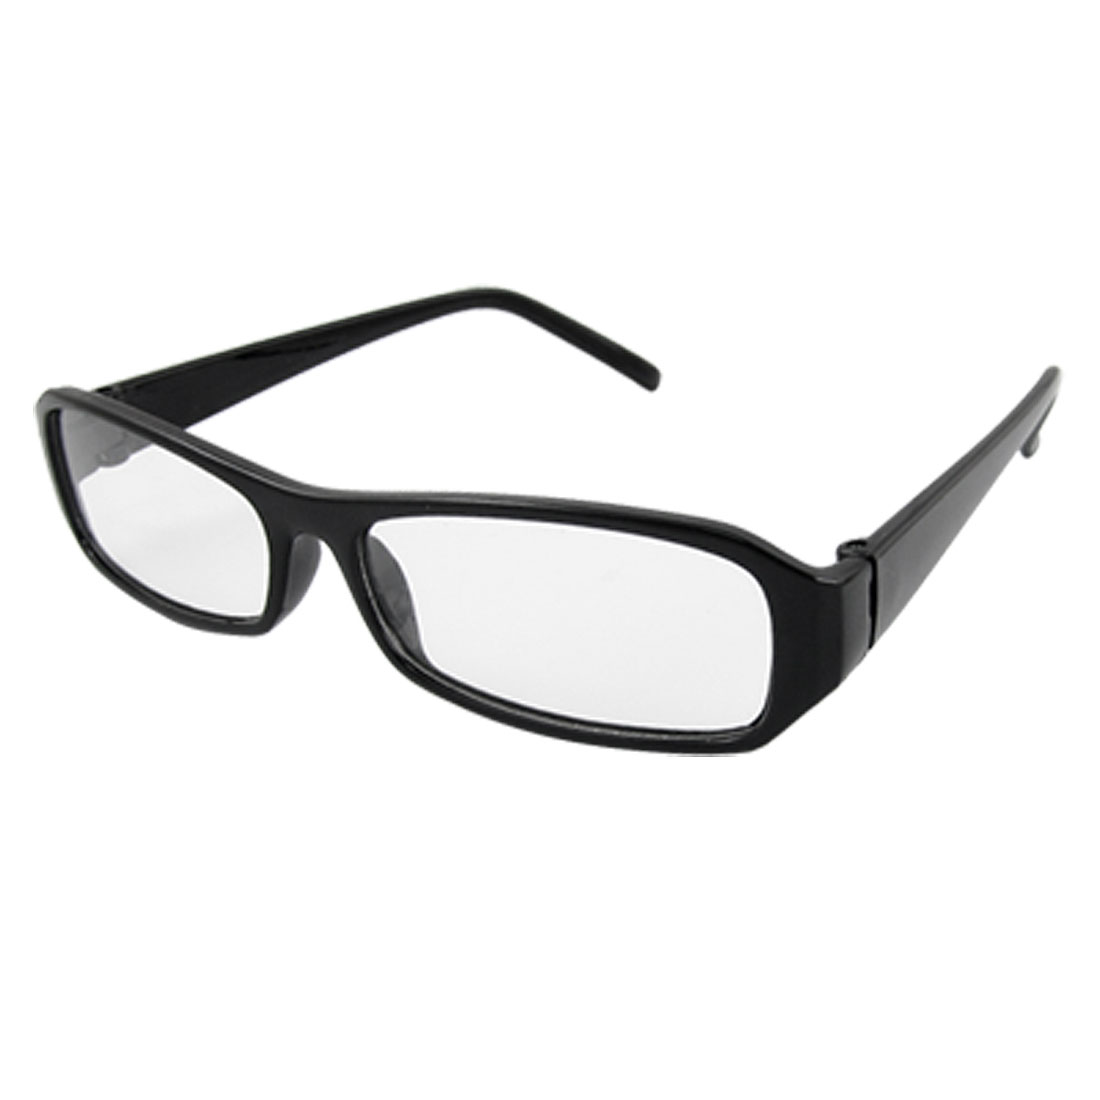 Unisex Full Rim Black Plastic Plain Glass Spectacles